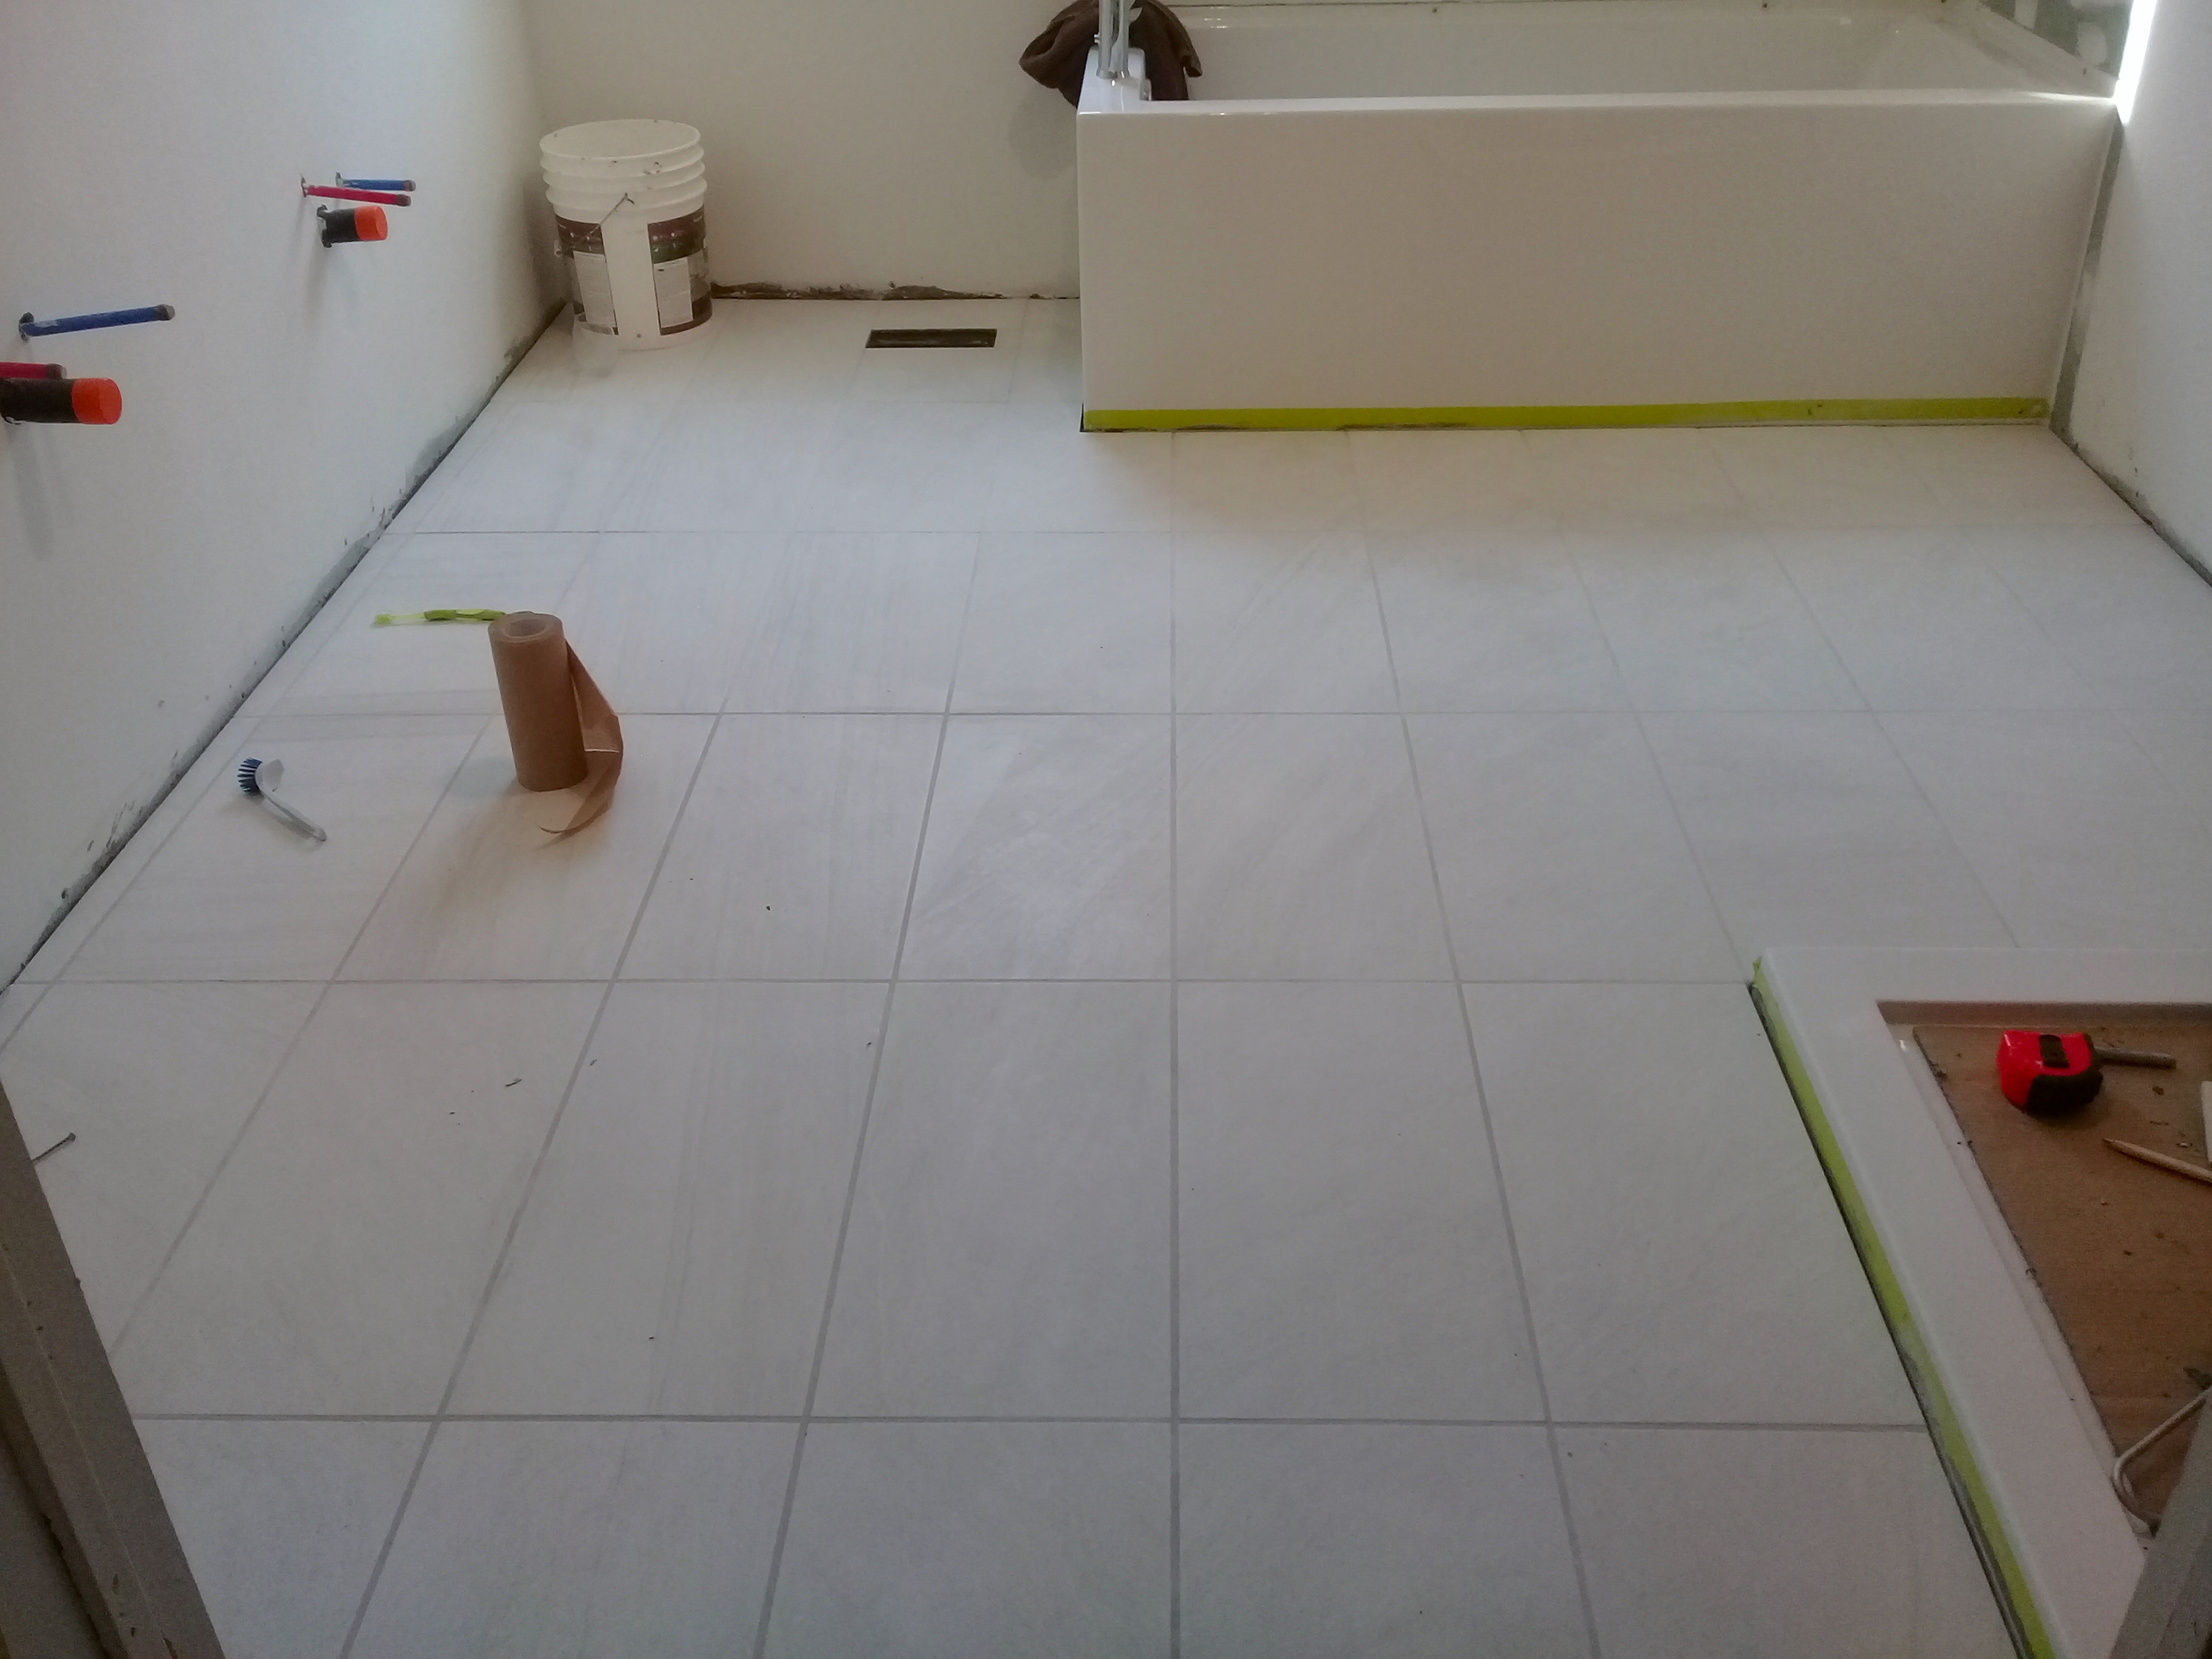 How To Ensure Your Grout Is The Color You Want The Washington Post